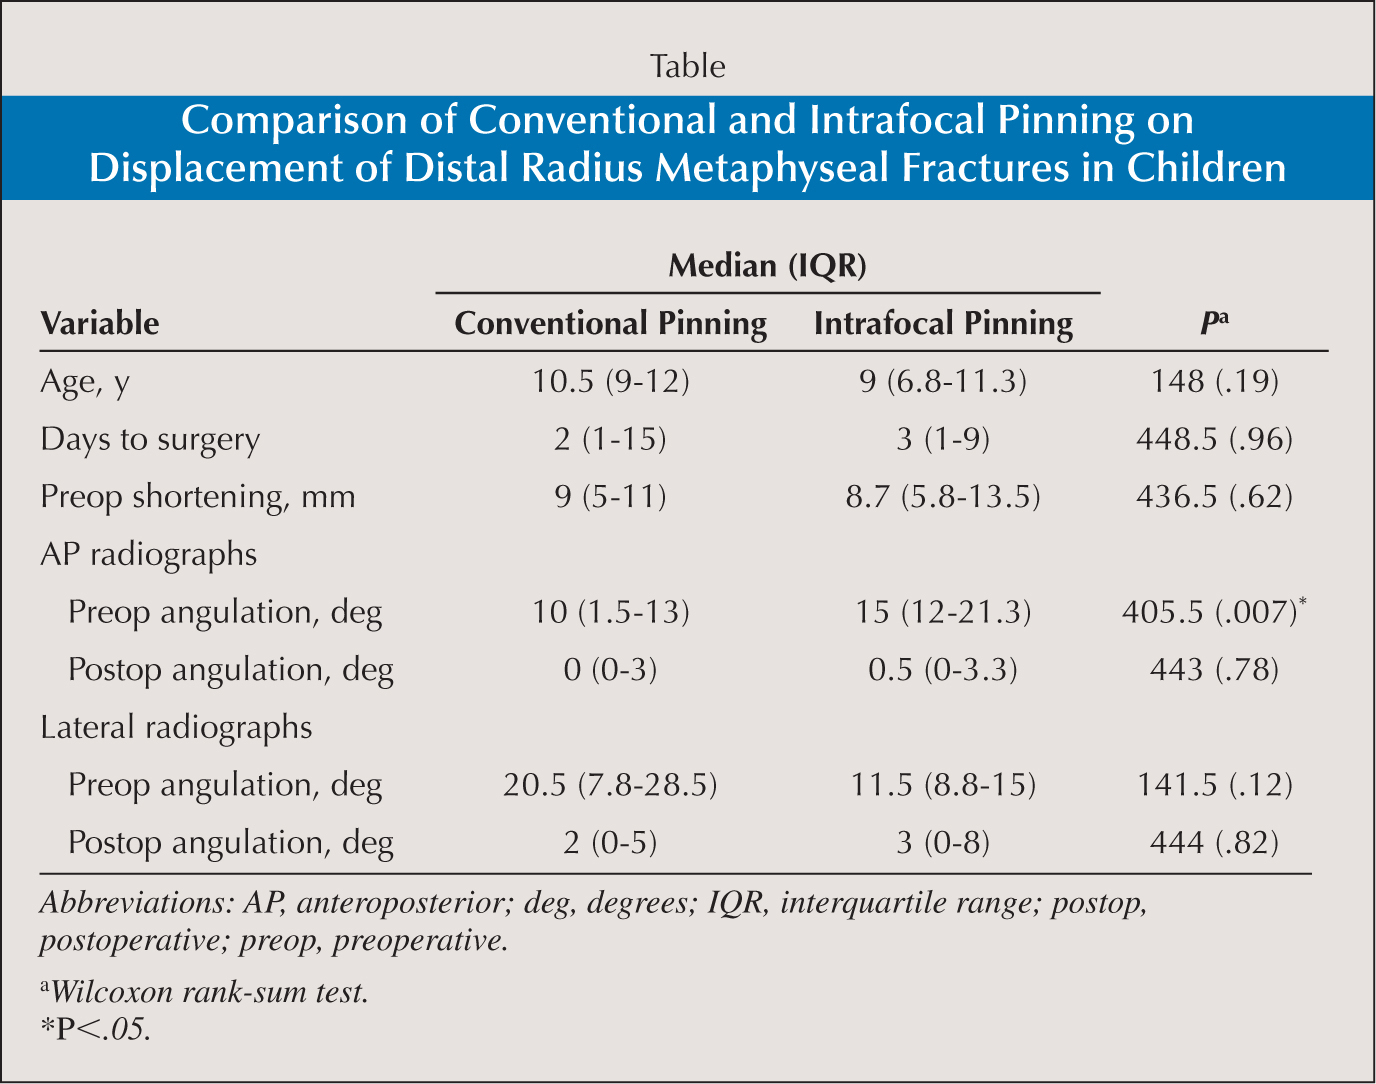 Comparison of Conventional and Intrafocal Pinning on Displacement of Distal Radius Metaphyseal Fractures in Children